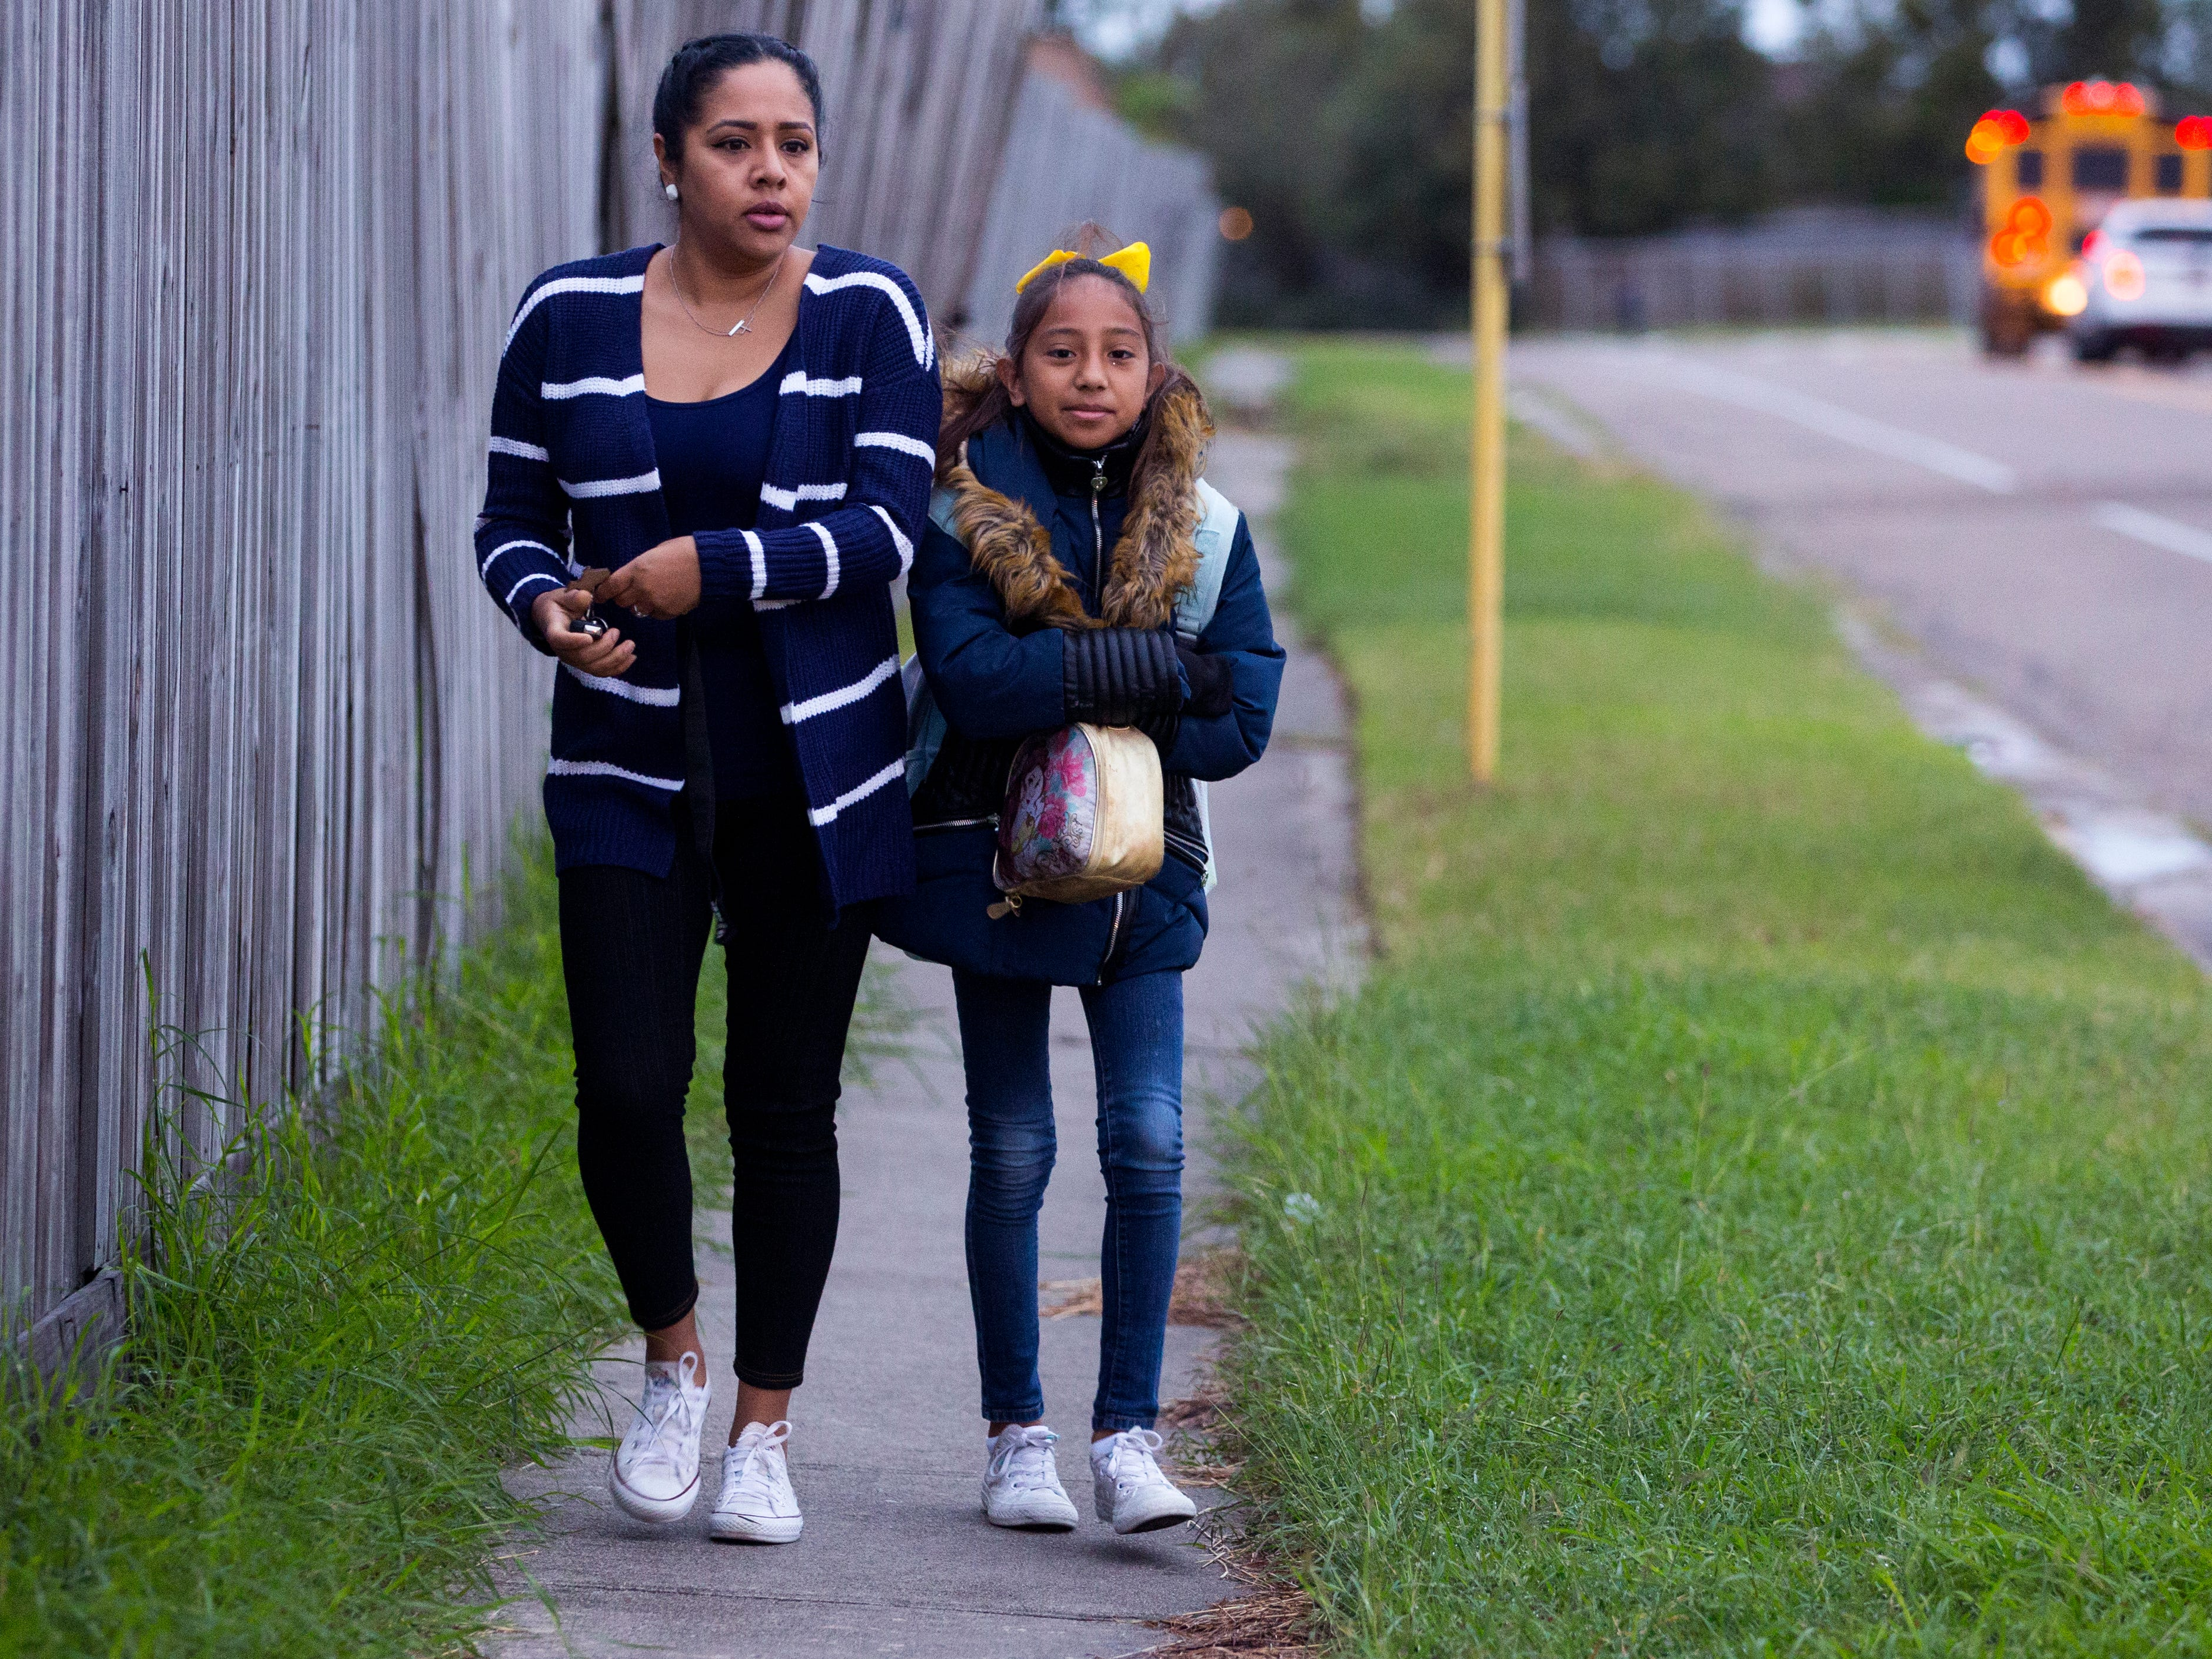 Roxy Torres (left) and Dezirae Cueva, 10, prepare to cross the street as they head to school at Dawson Elementary School on Tuesday, October 16, 2018. The Coastal Bend will continue to see isolated showers and thunderstorms in the early part of the week and get slightly warmer toward the weekend.